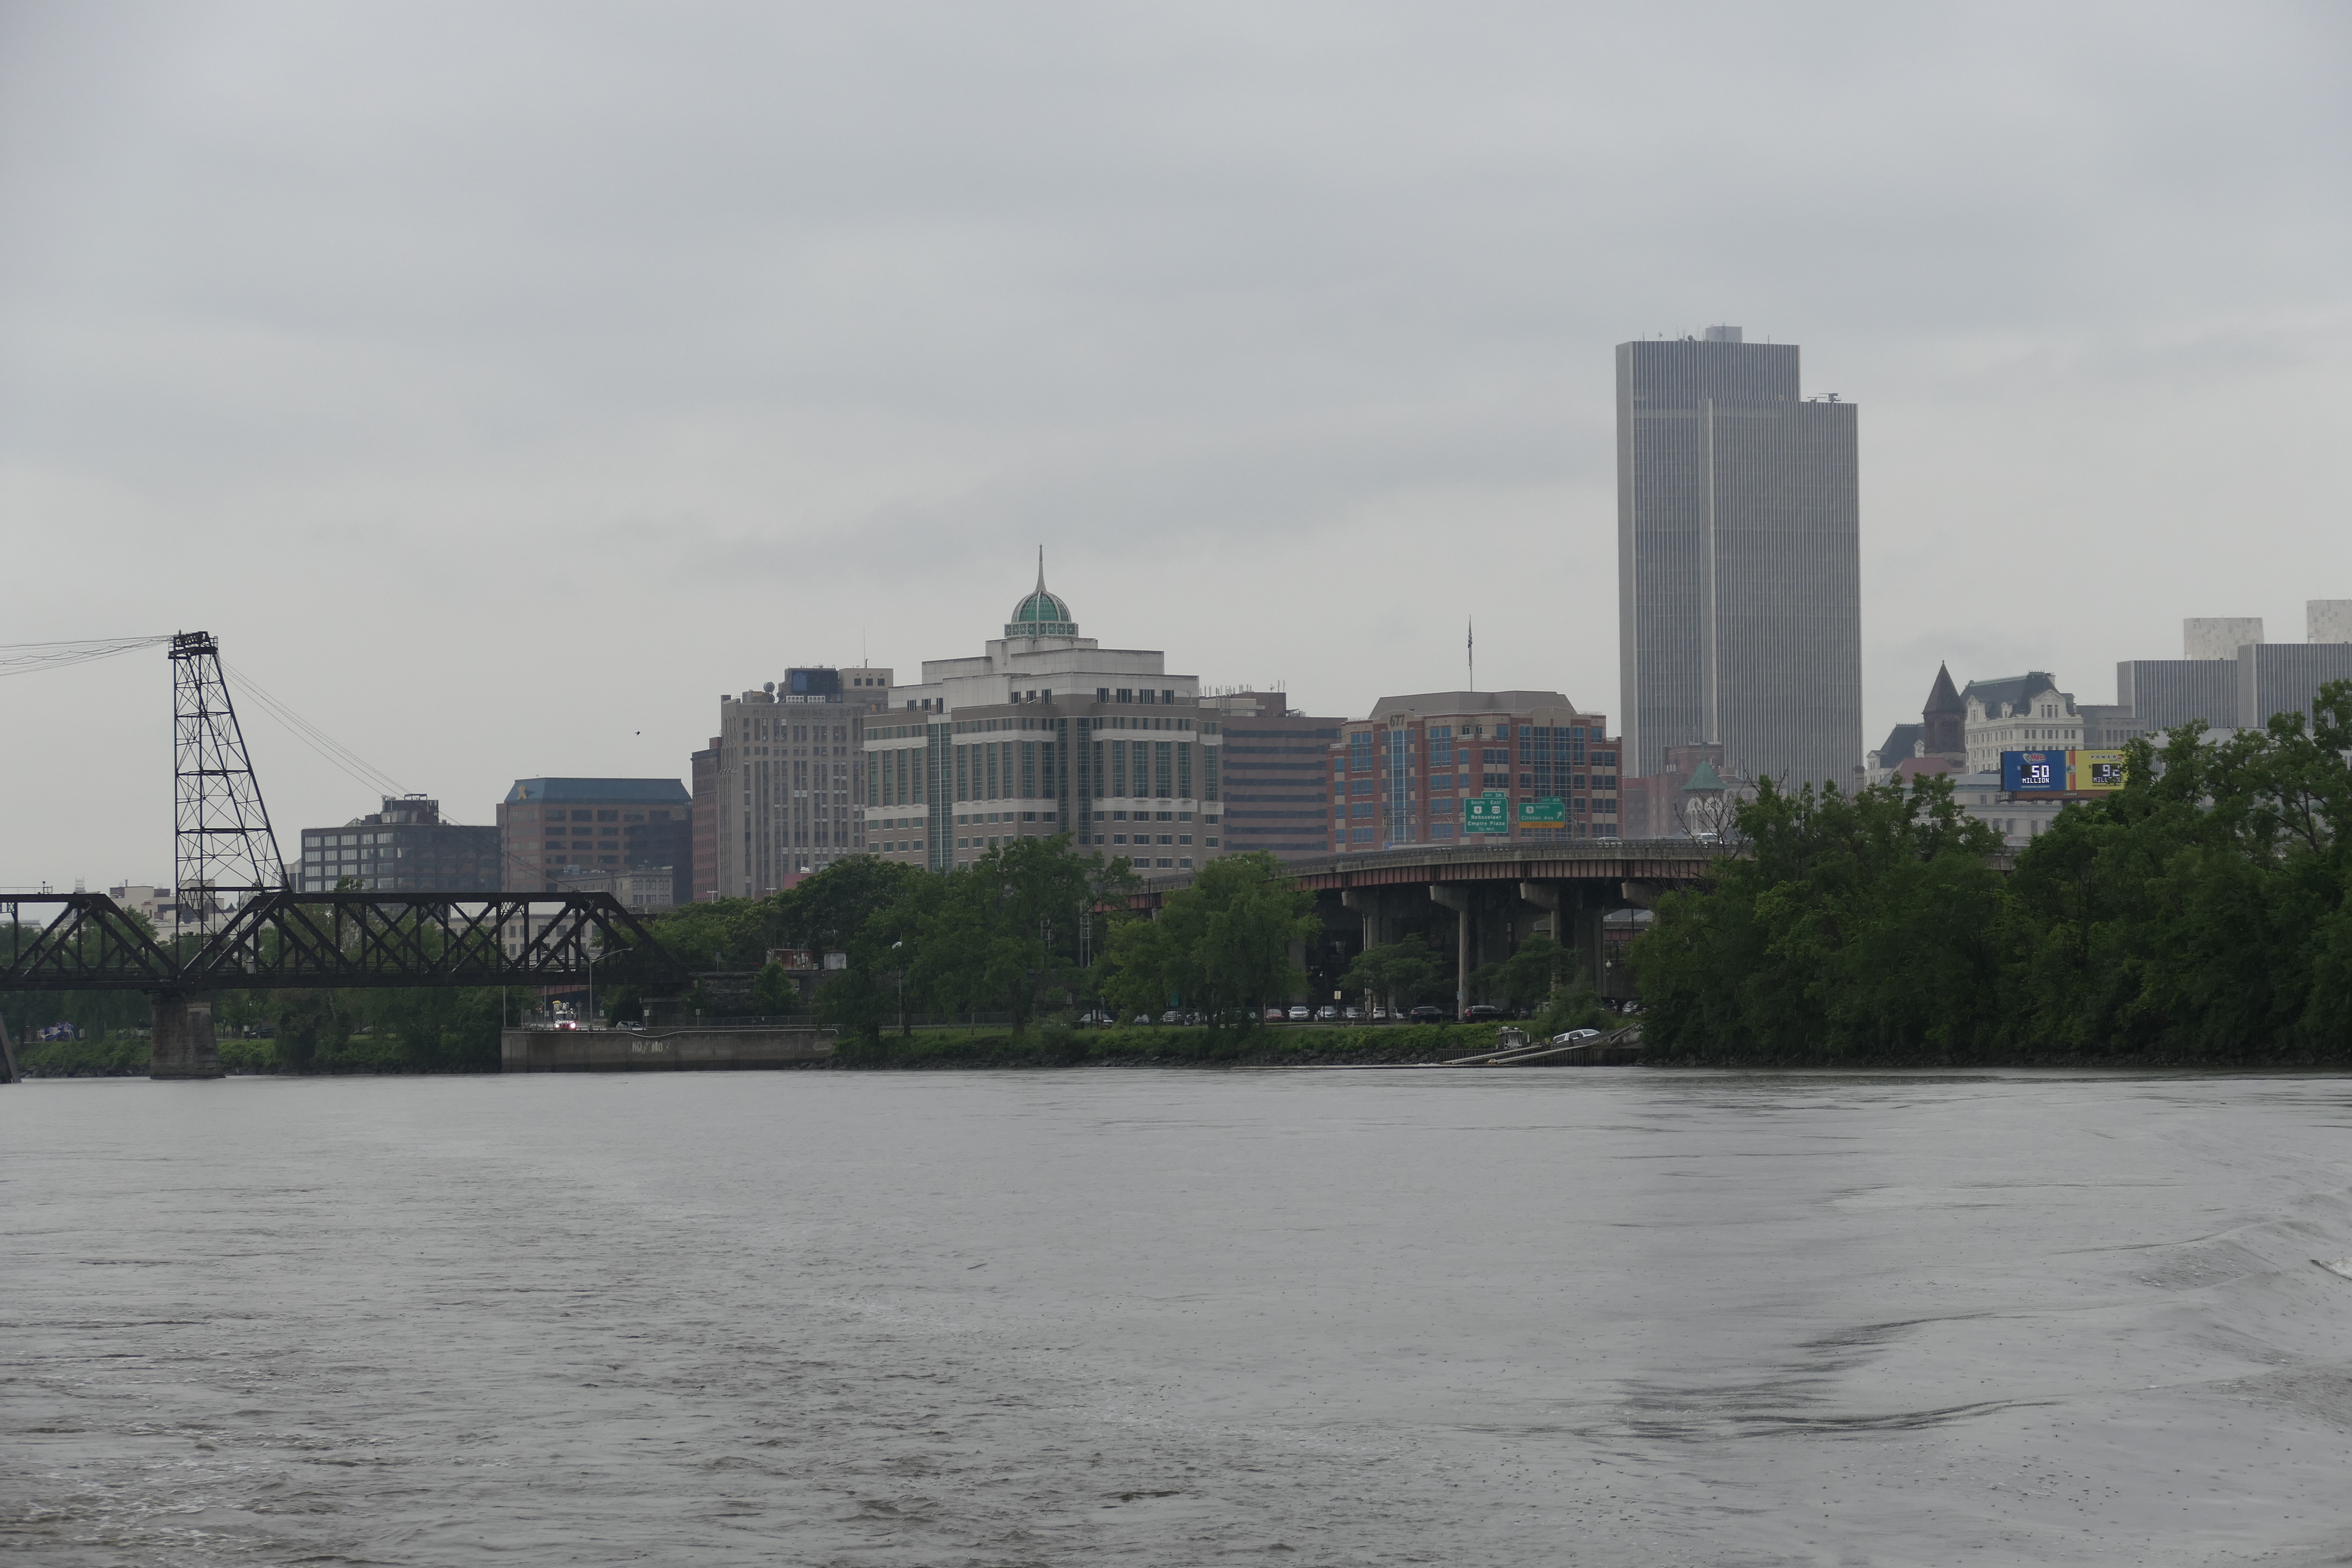 Another view of Albany